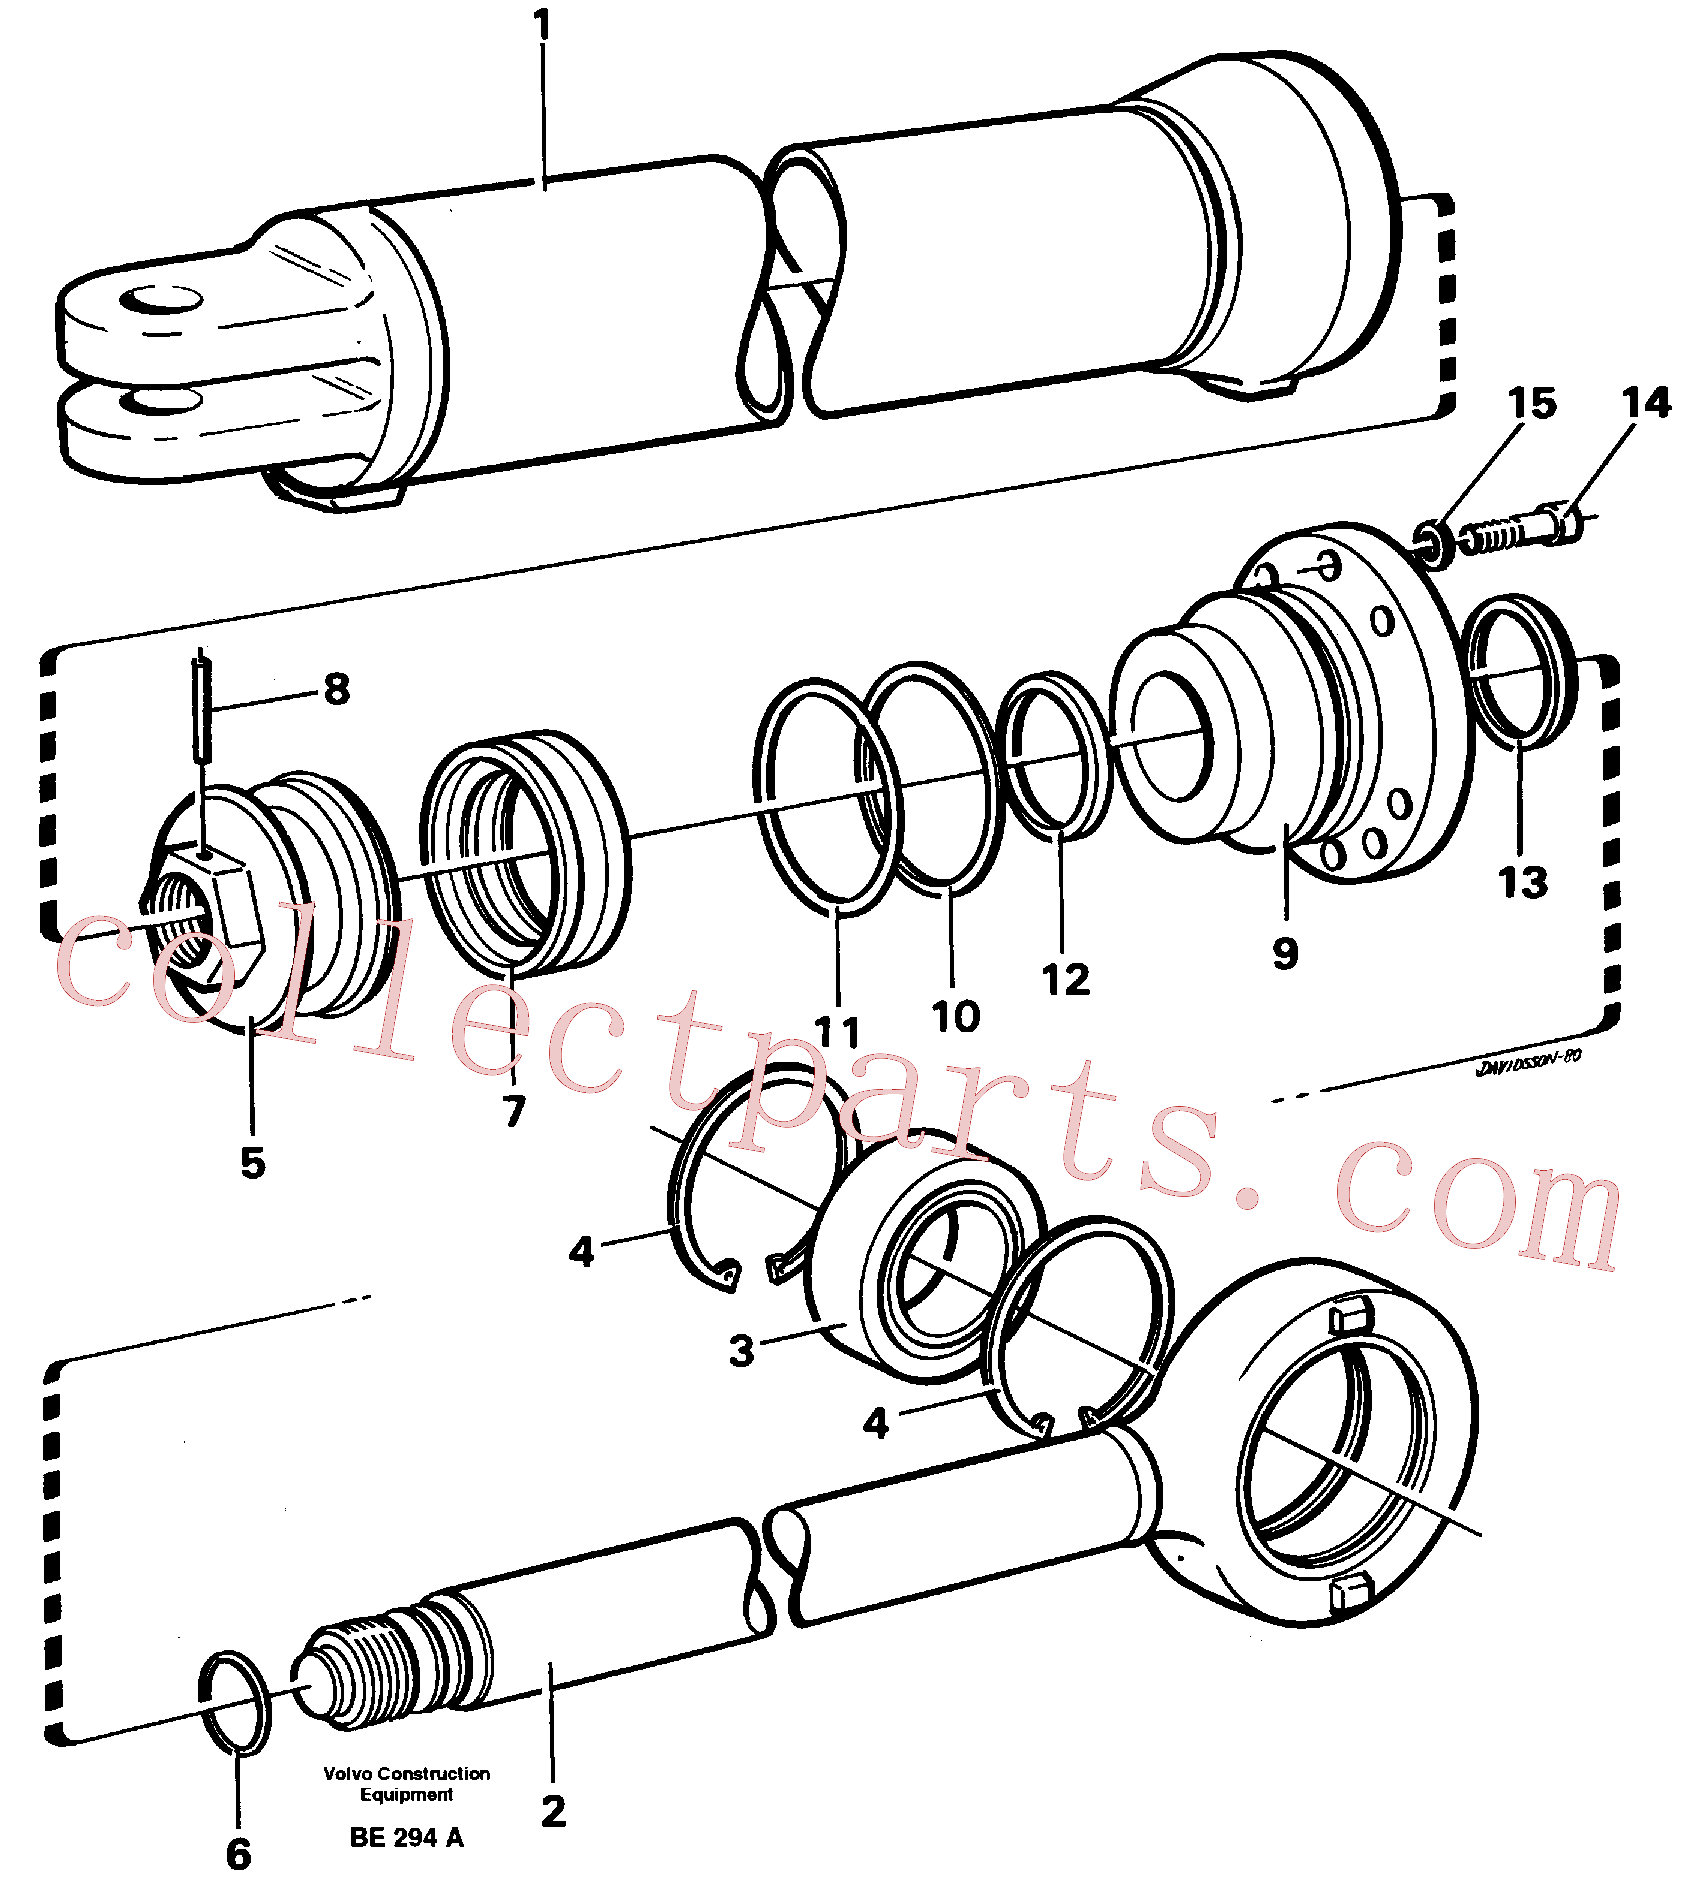 VOE960178 for Volvo Hydraulic cylinder(BE294A assembly)